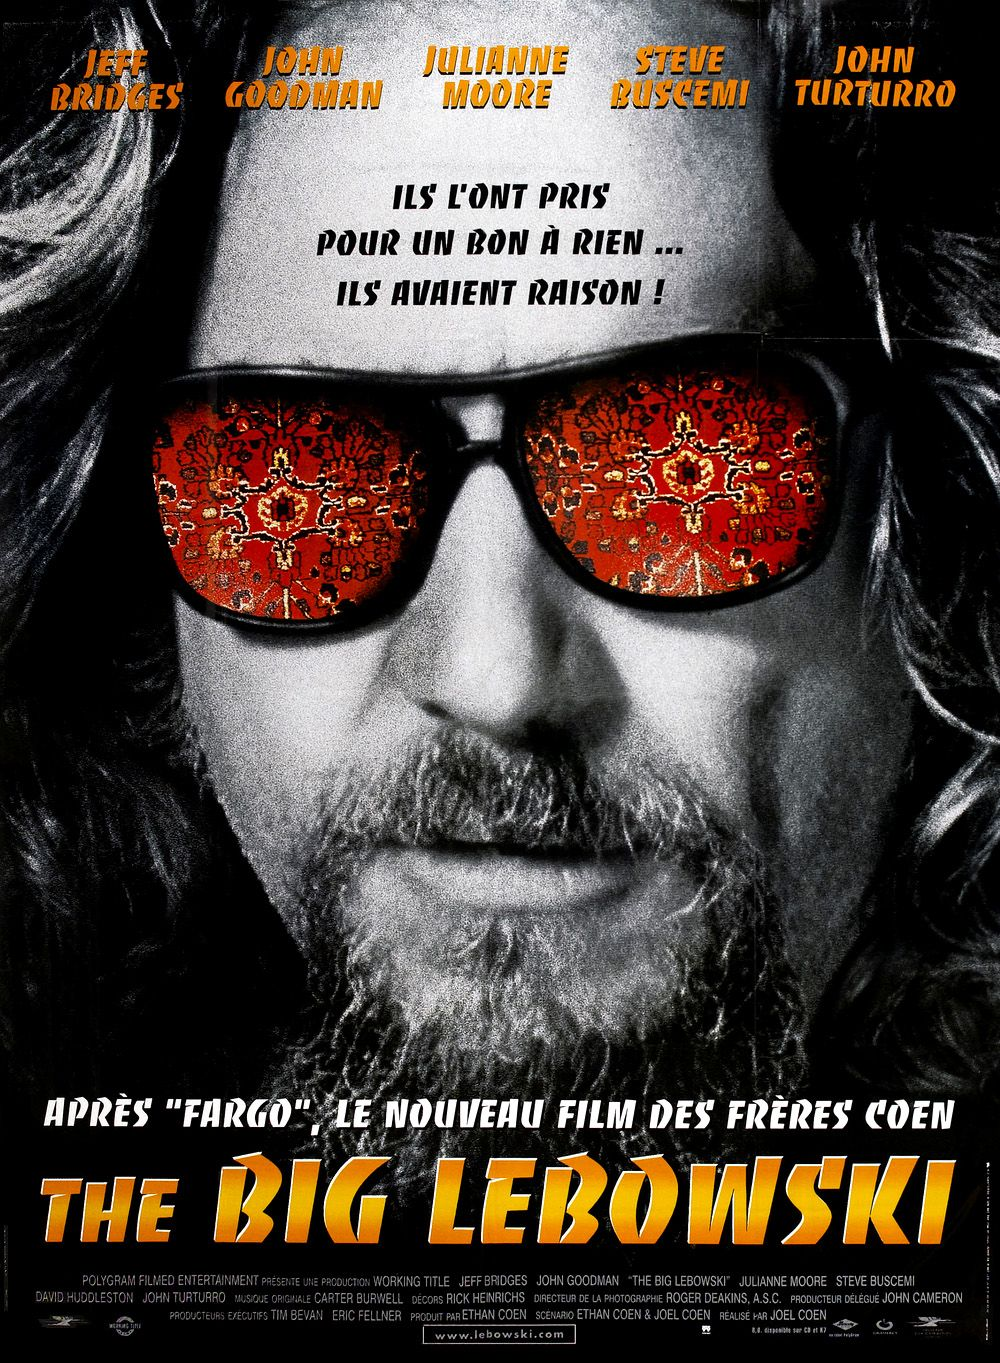 The Big Lebowski Film 1998 Senscritique